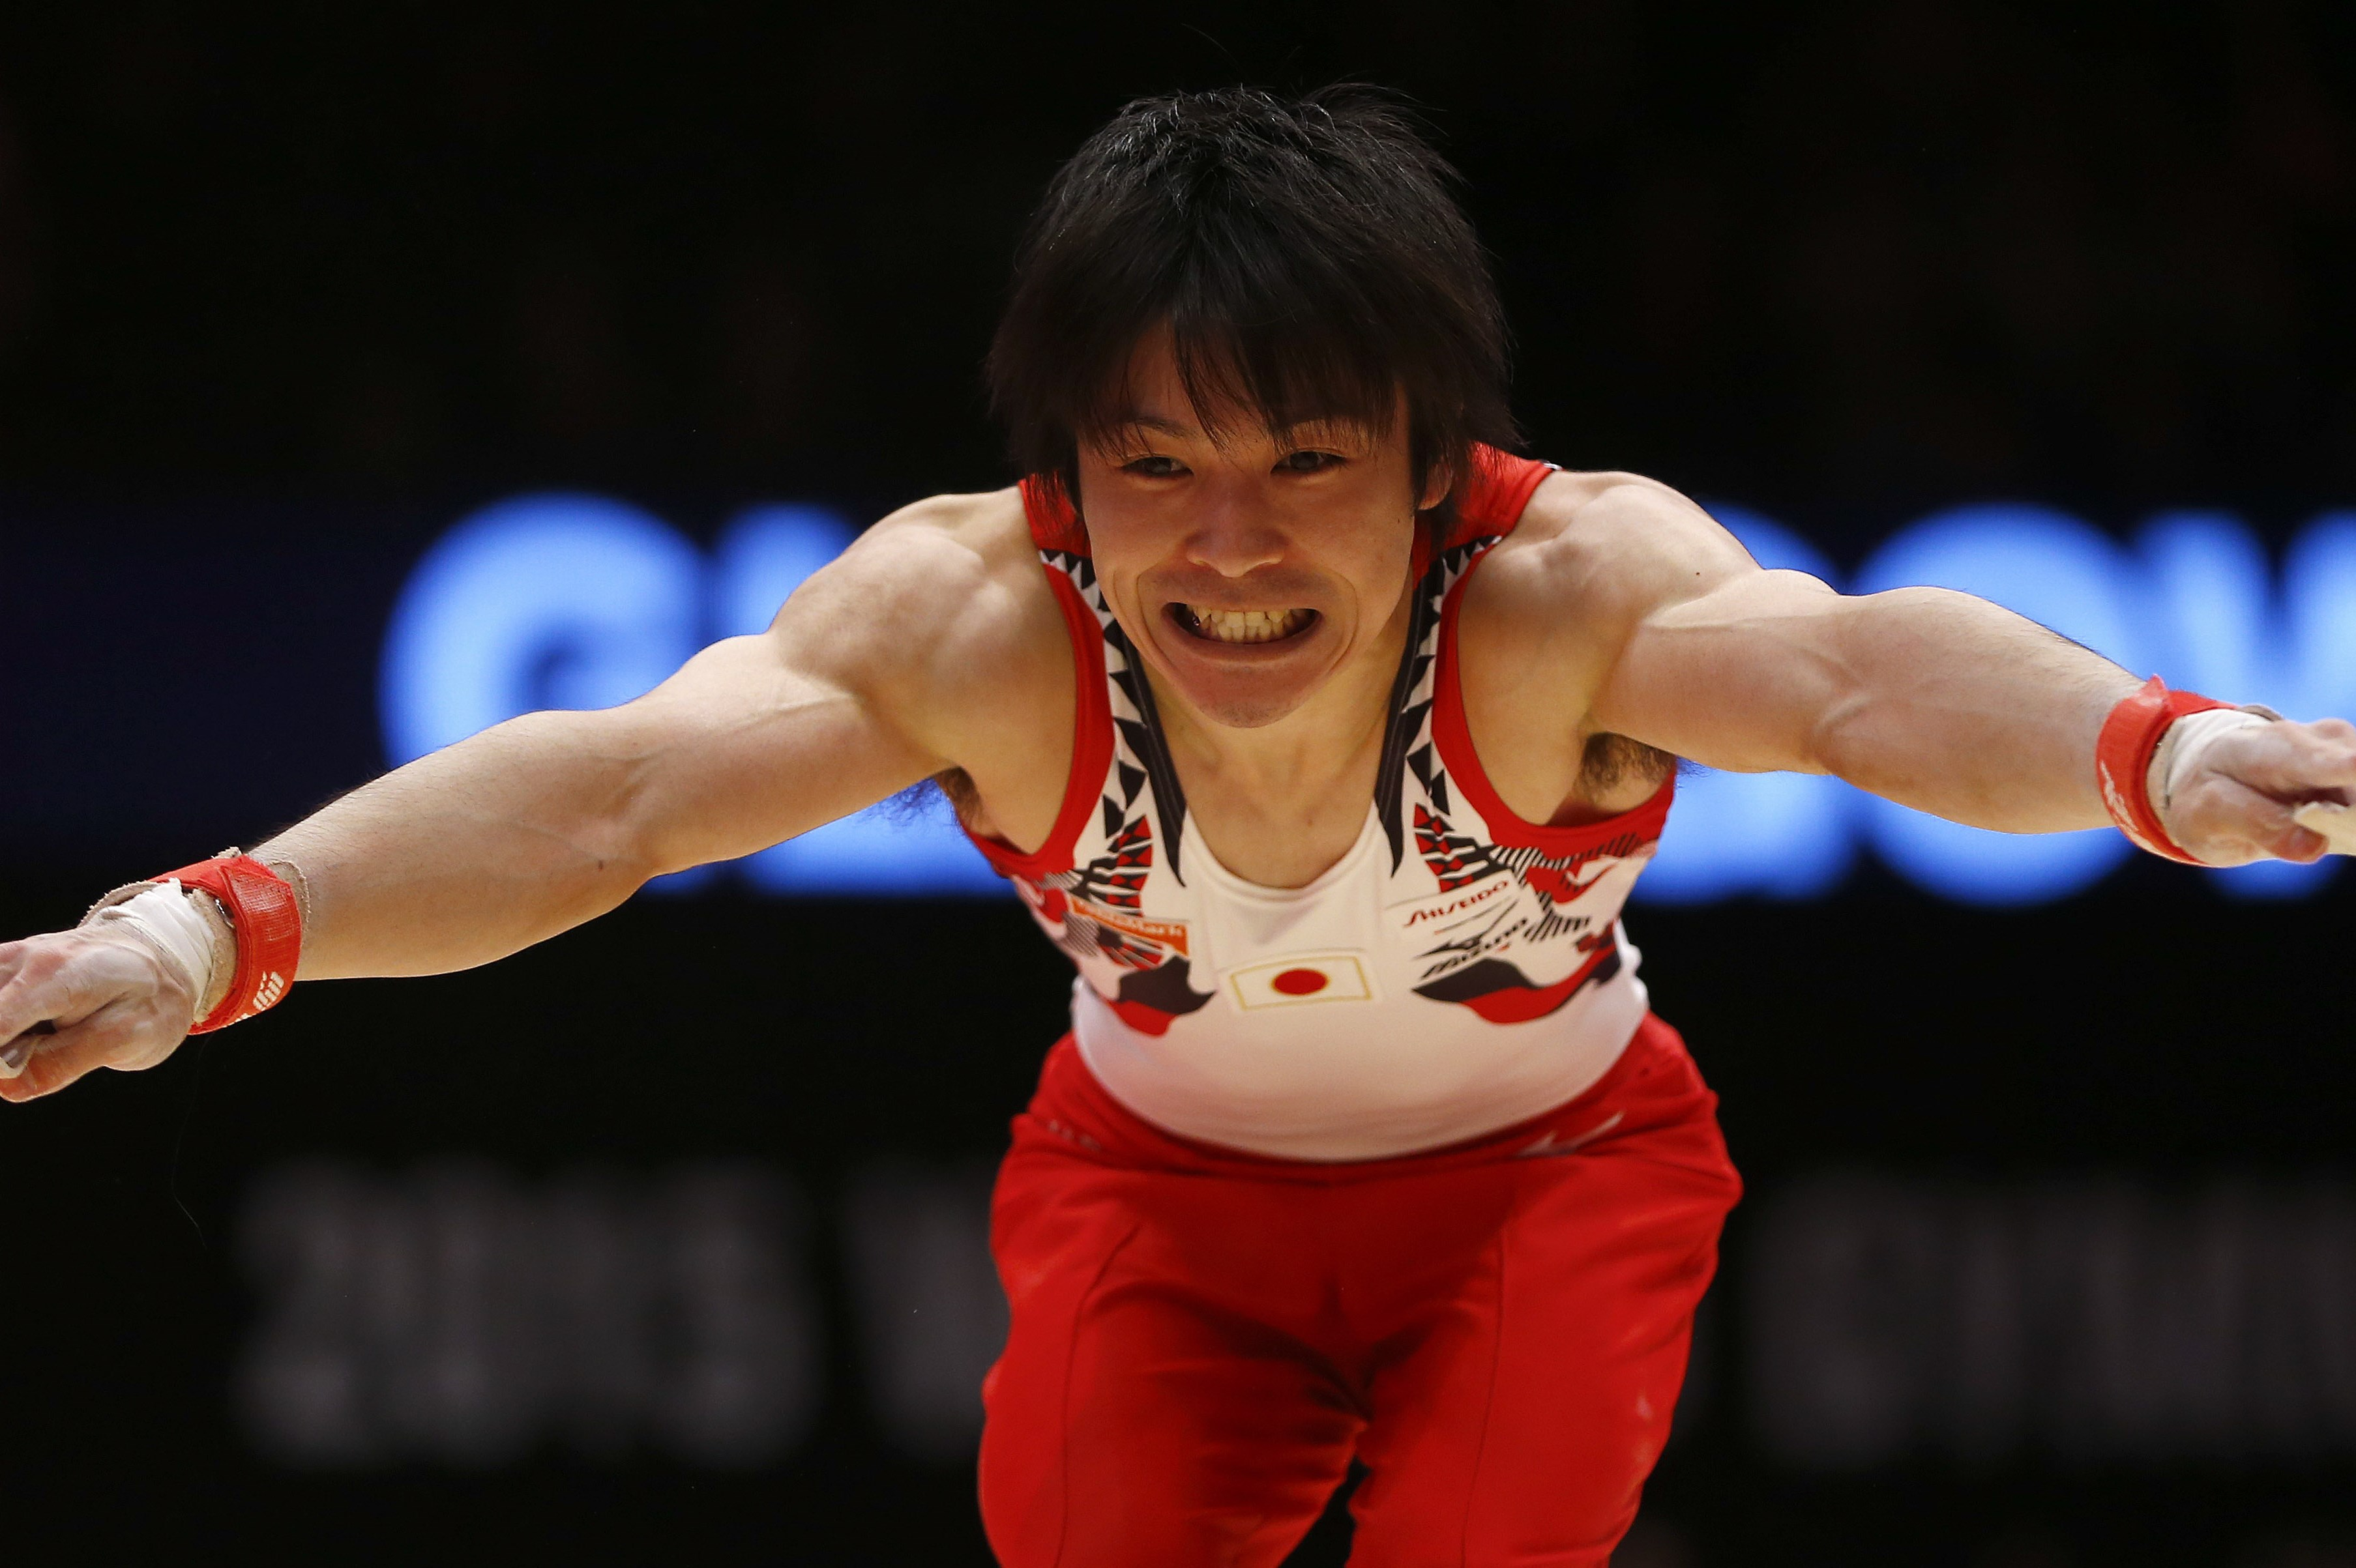 Winner Japans Kohei Uchimura performs on the horizontal bar during the men's apparatus final competition at the World Artistic Gymnastics championships at the SSE Hydro Arena in Glasgow, Scotland, Sunday, Nov. 1, 2015. (AP Photo/Matthias Schrader)